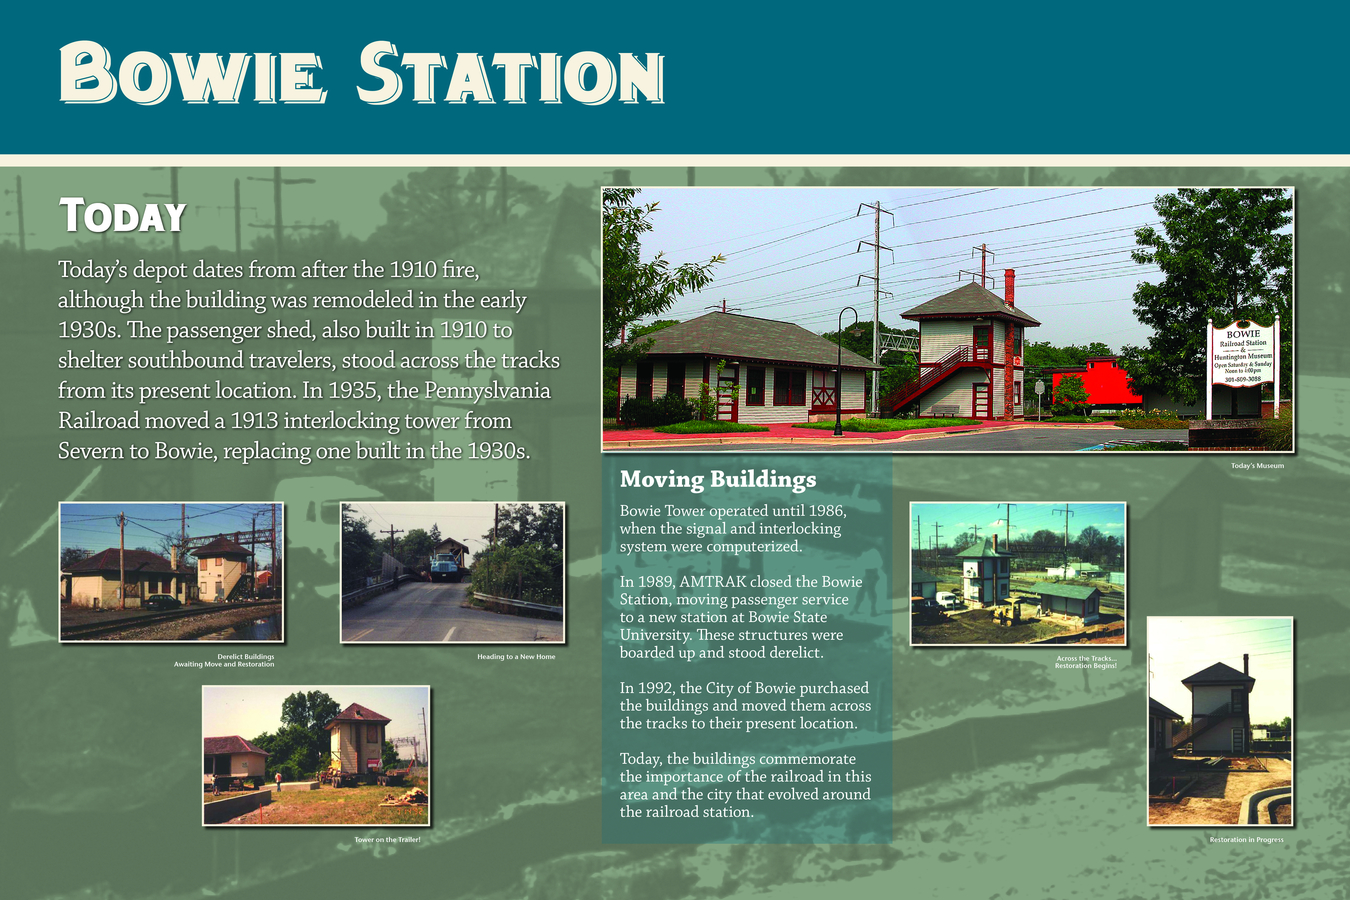 3 BOW WLCM PNLS : Bowie Station has been moved across the tracks for historic preservation